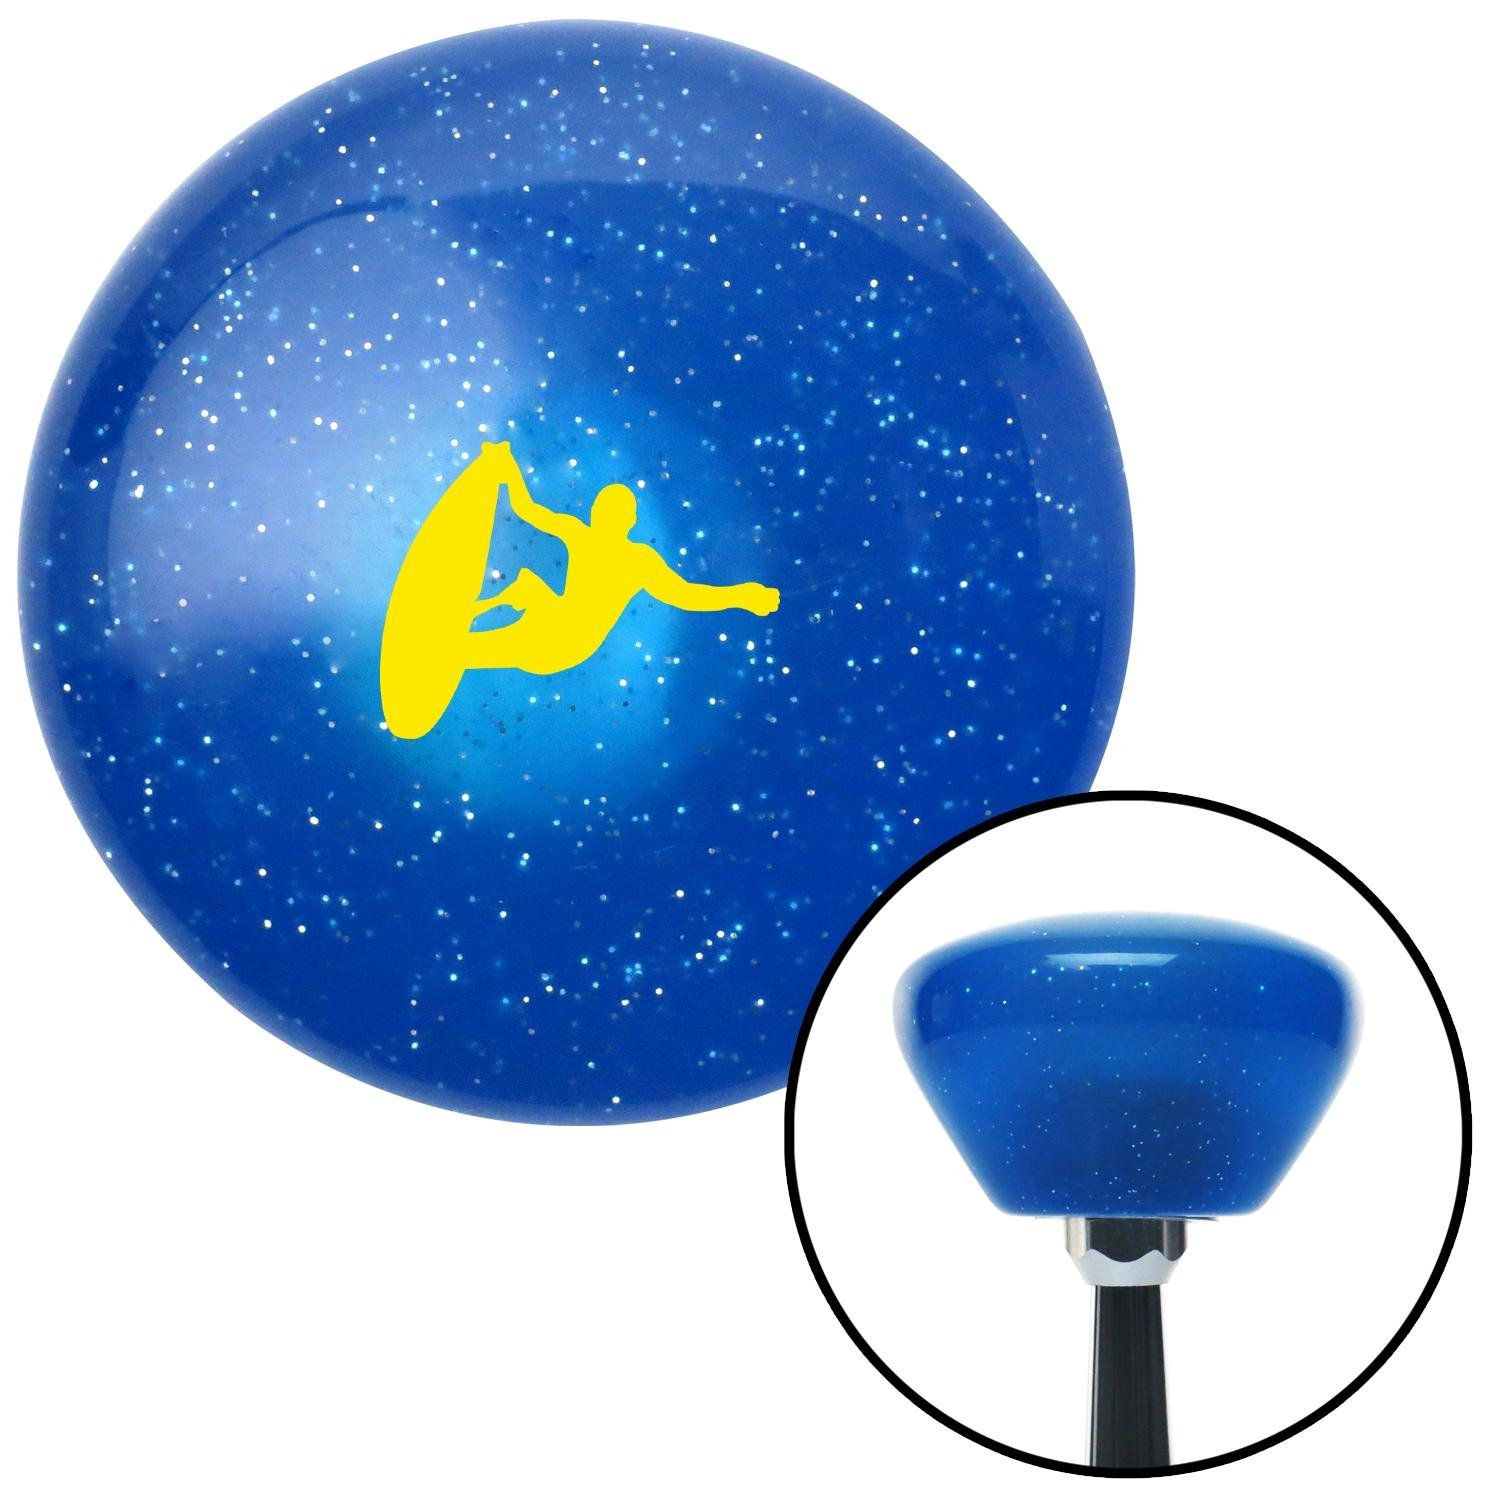 American Shifter 289299 Shift Knob Yellow Surfer Catching A Wave Blue Retro Metal Flake with M16 x 1.5 Insert